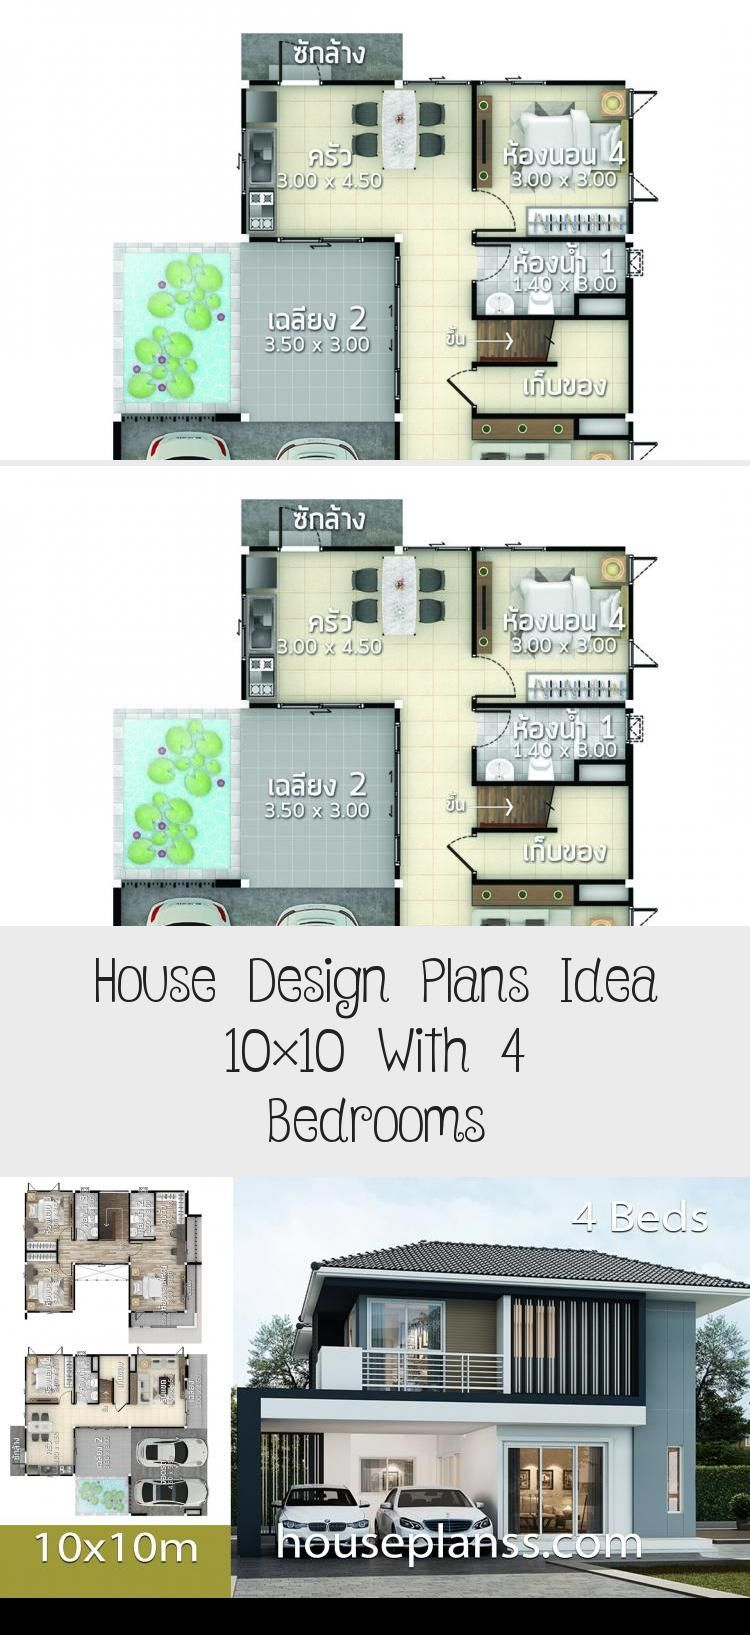 10x10 Room Design: House Design Plans Idea 10x10 With 4 Bedrooms